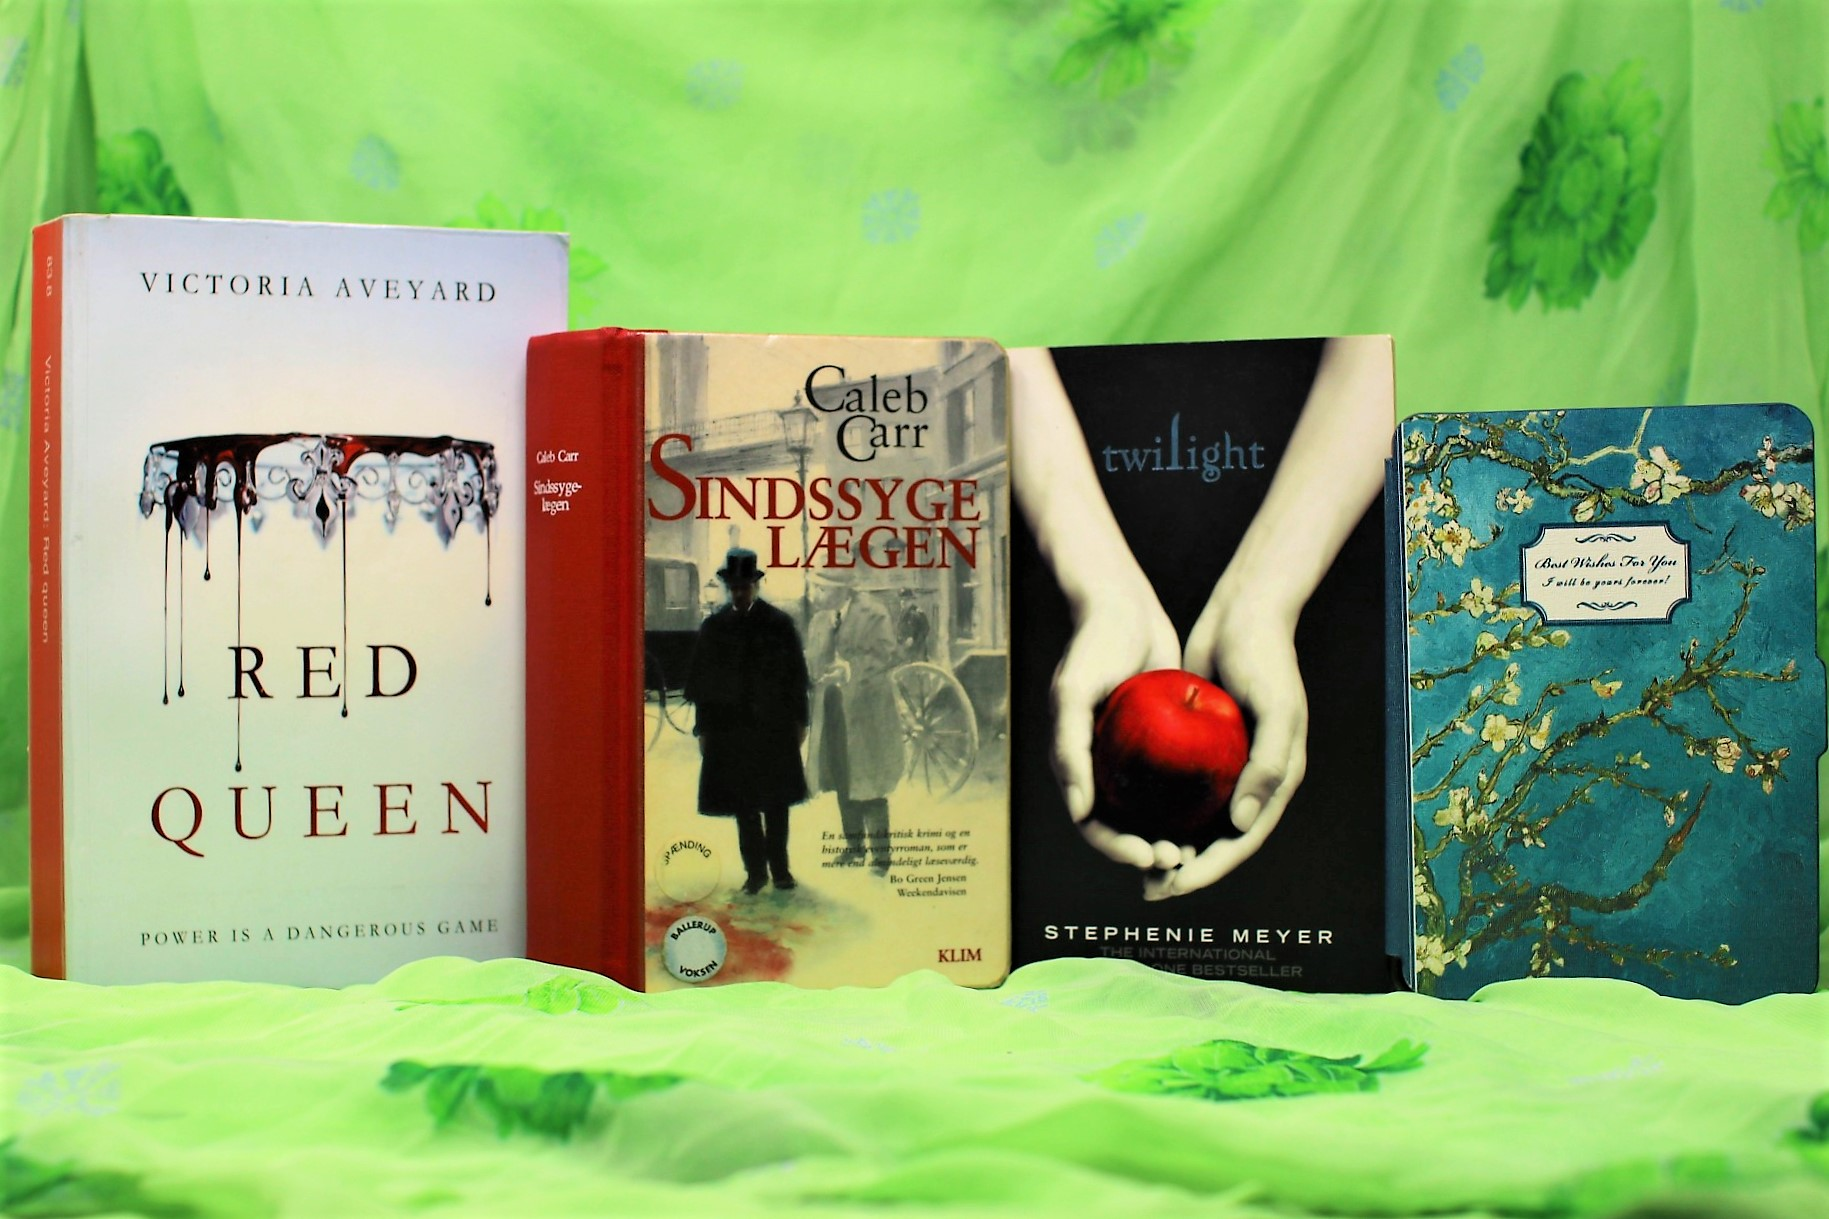 My February TBR consists of: Red Queen, The Alienist, Twilight, and on my Kindle: A Wild and Unremarkable Thing and Wildwood